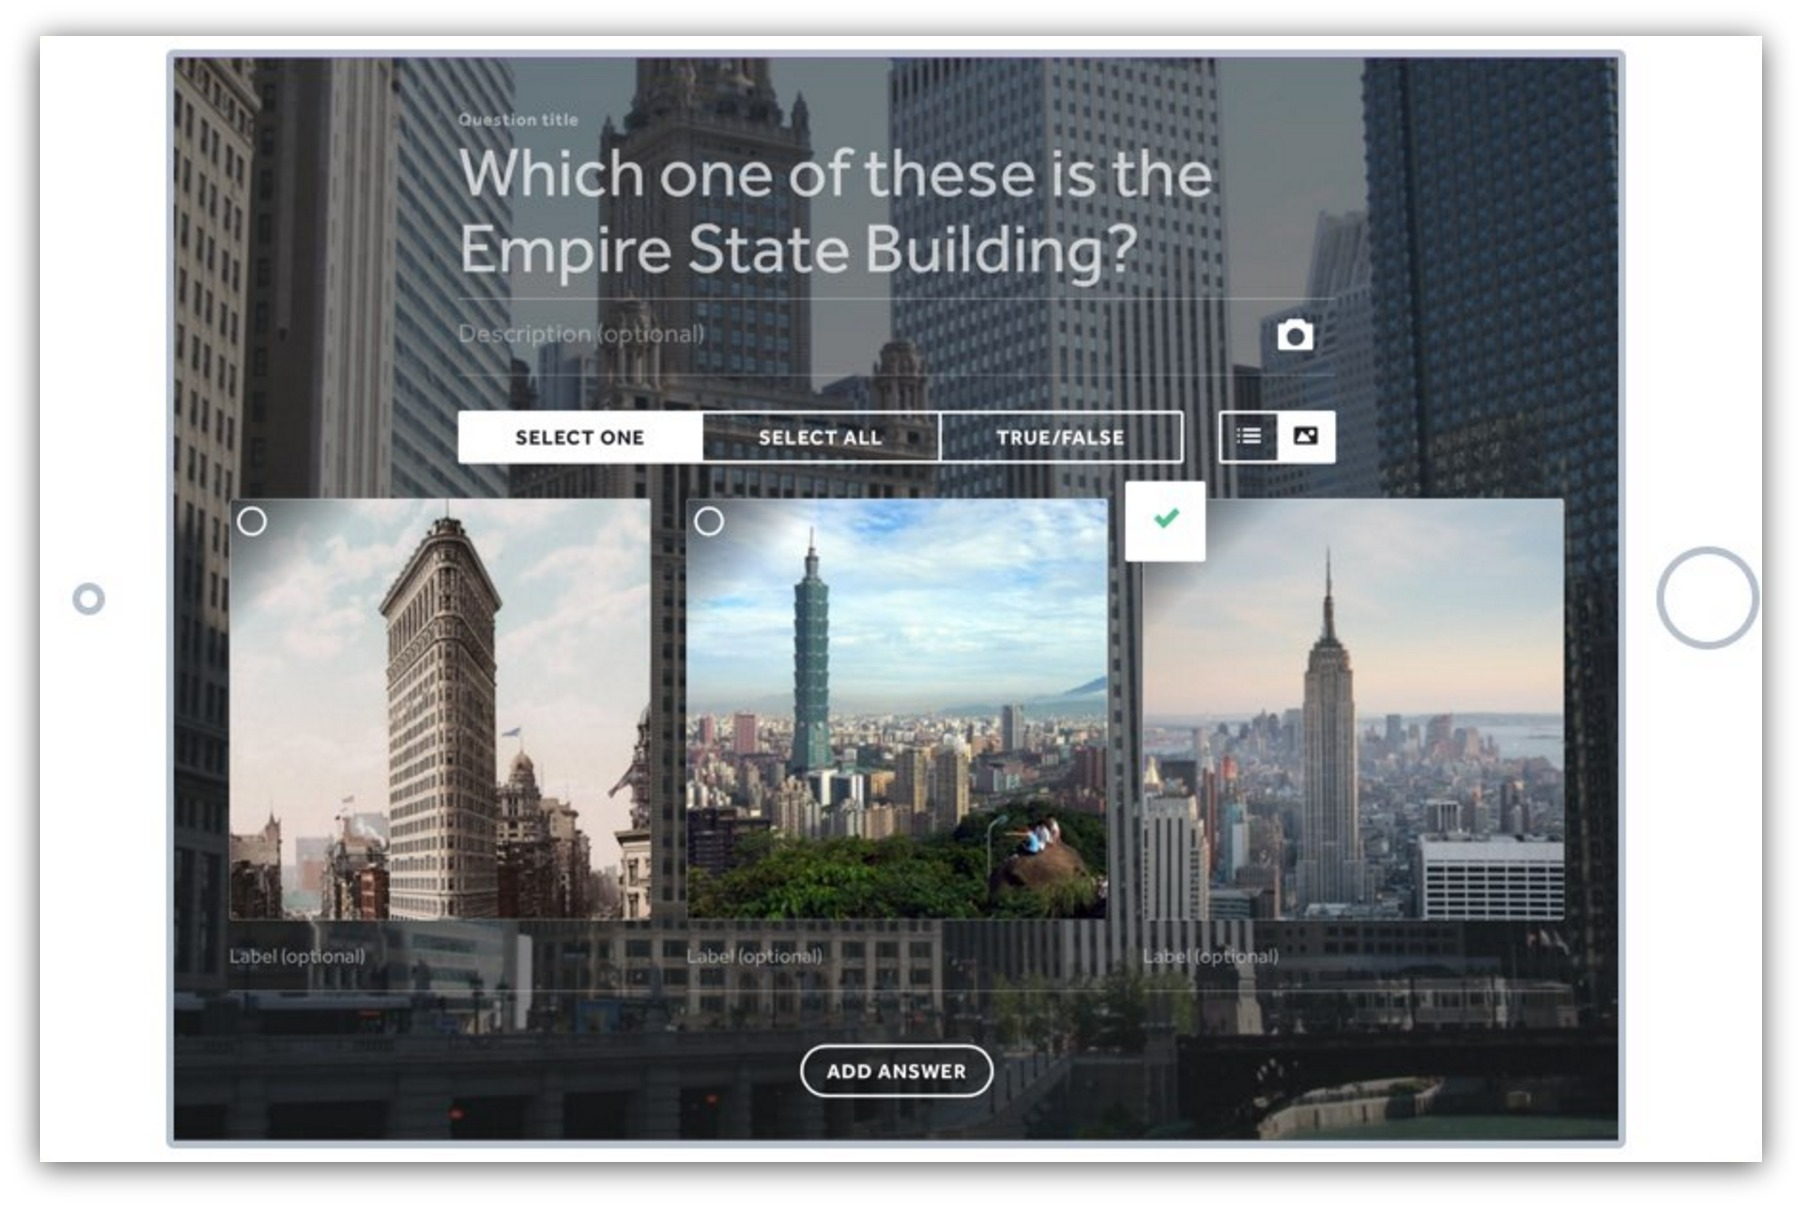 Screenshot showing a simple quiz about buildings